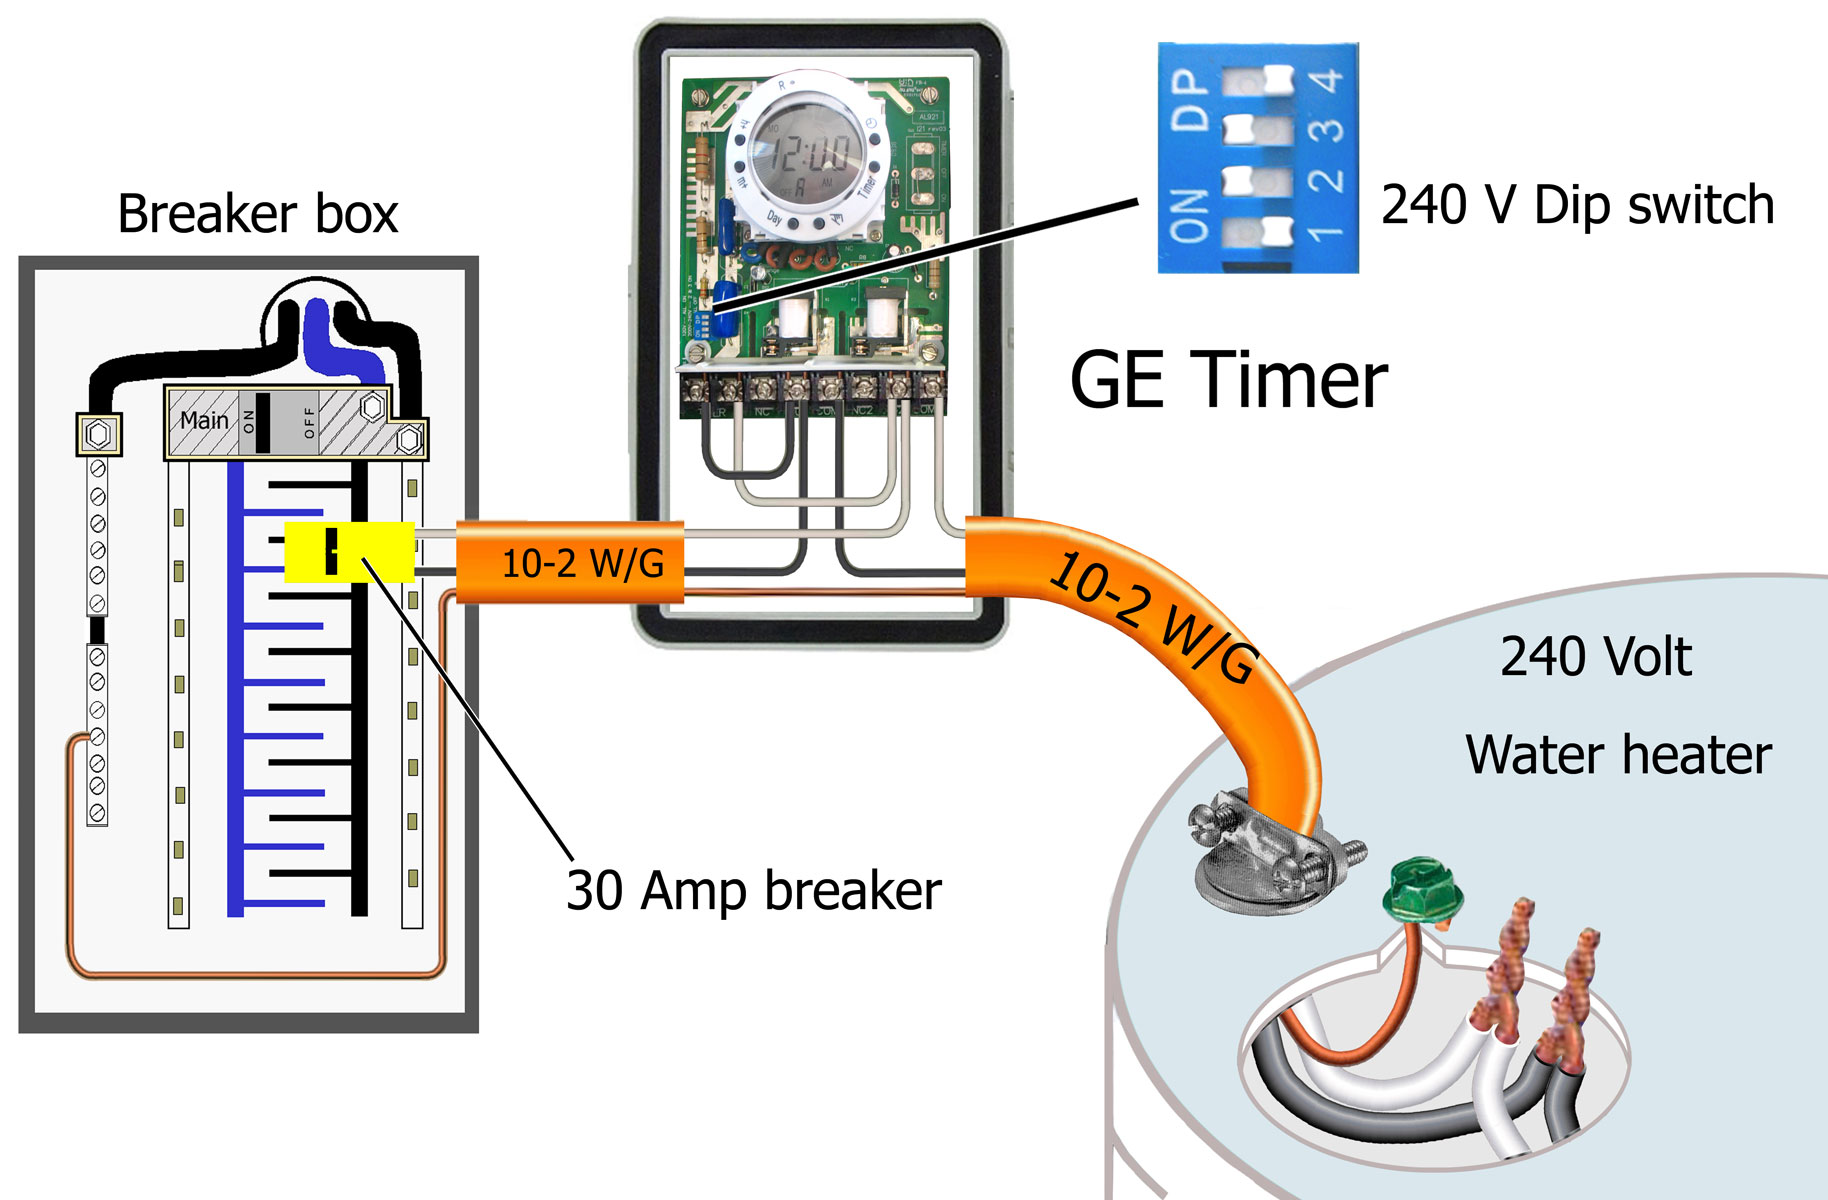 GE to water heater 500a how to wire ge 15136 timer wiring diagram for a ge water heater at fashall.co